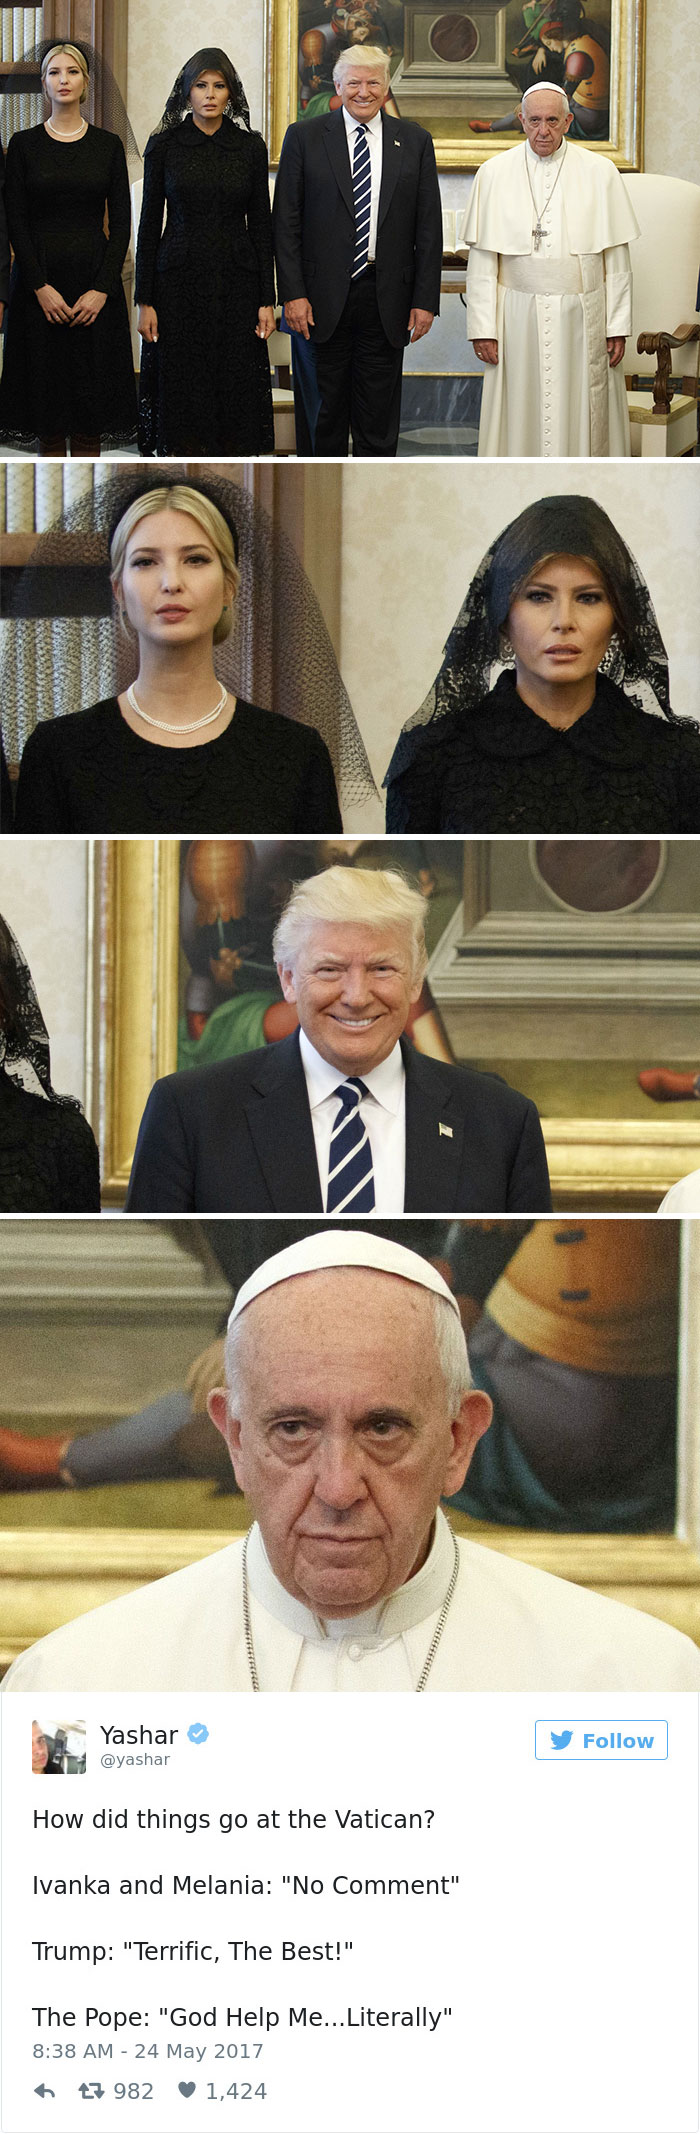 donald trump pope francis awkward photo 11